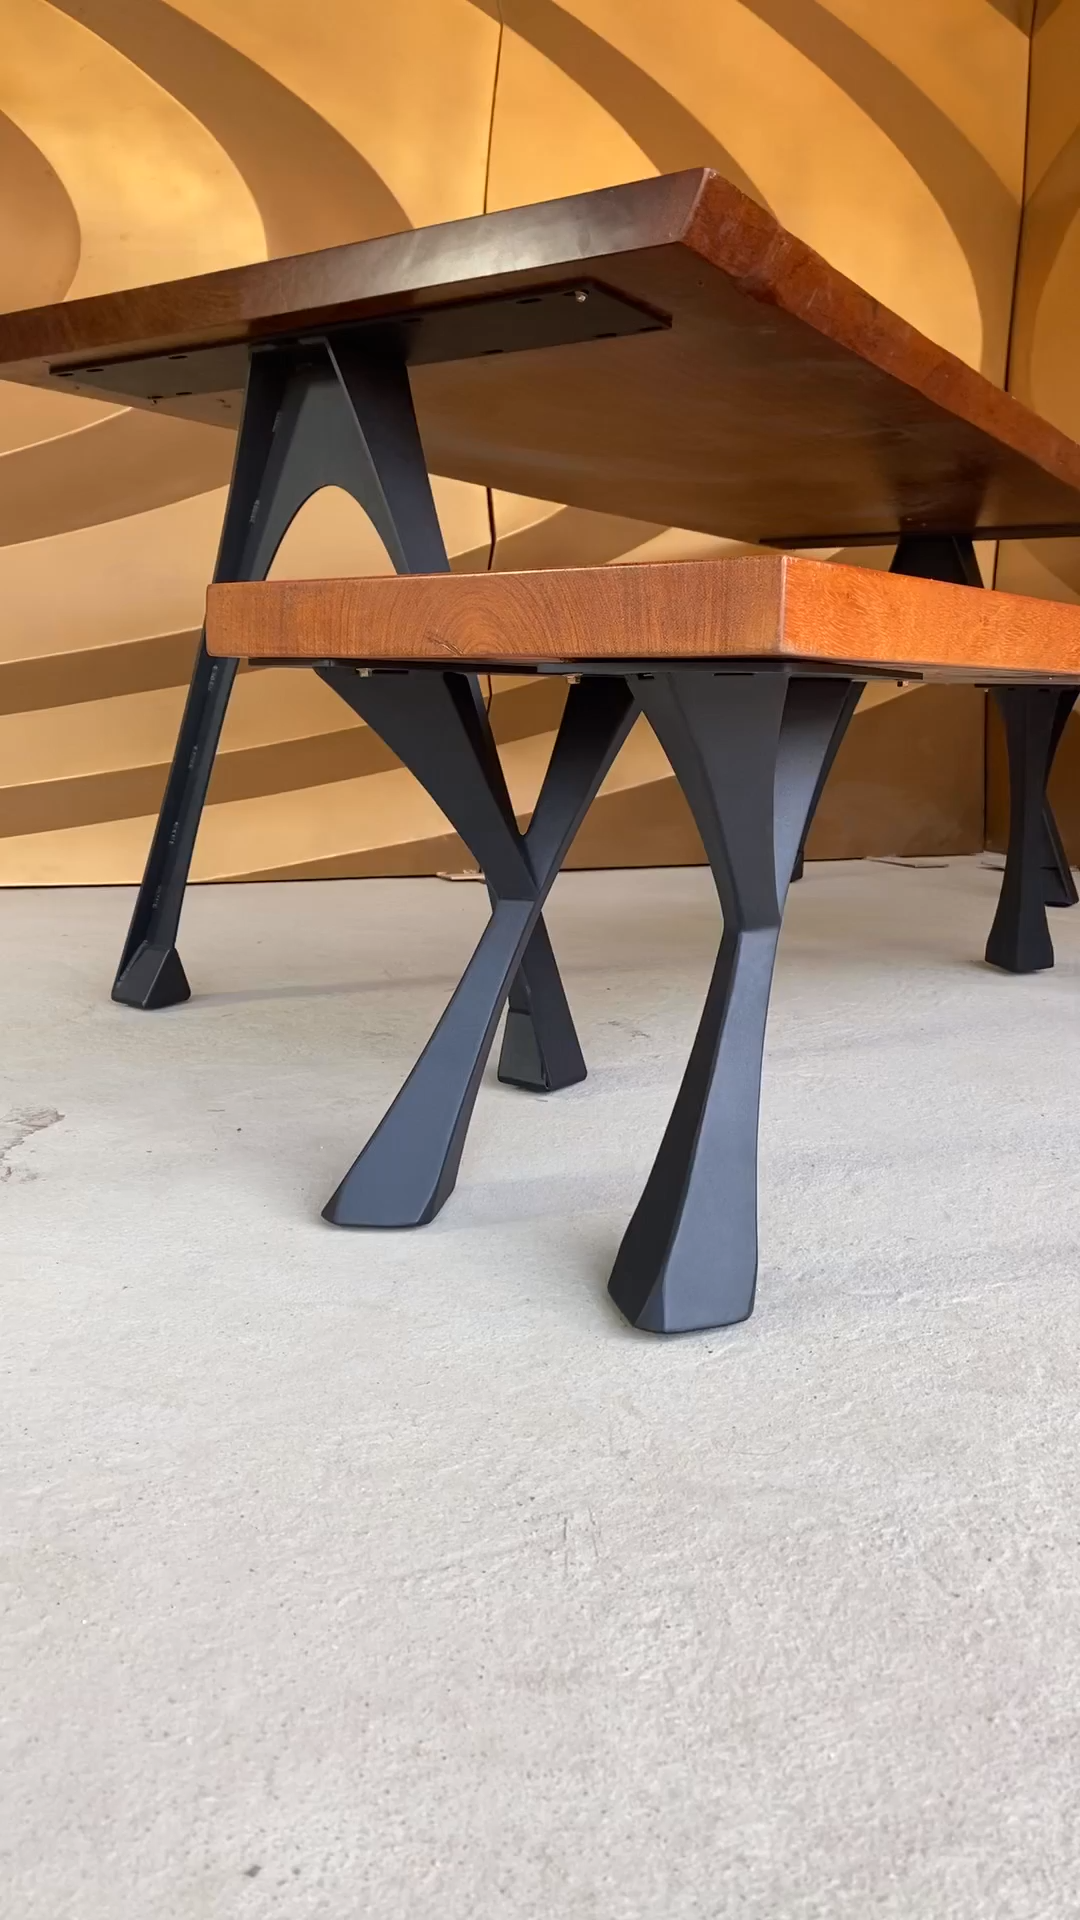 Table Legs & Metal Table Base for live edge top, r